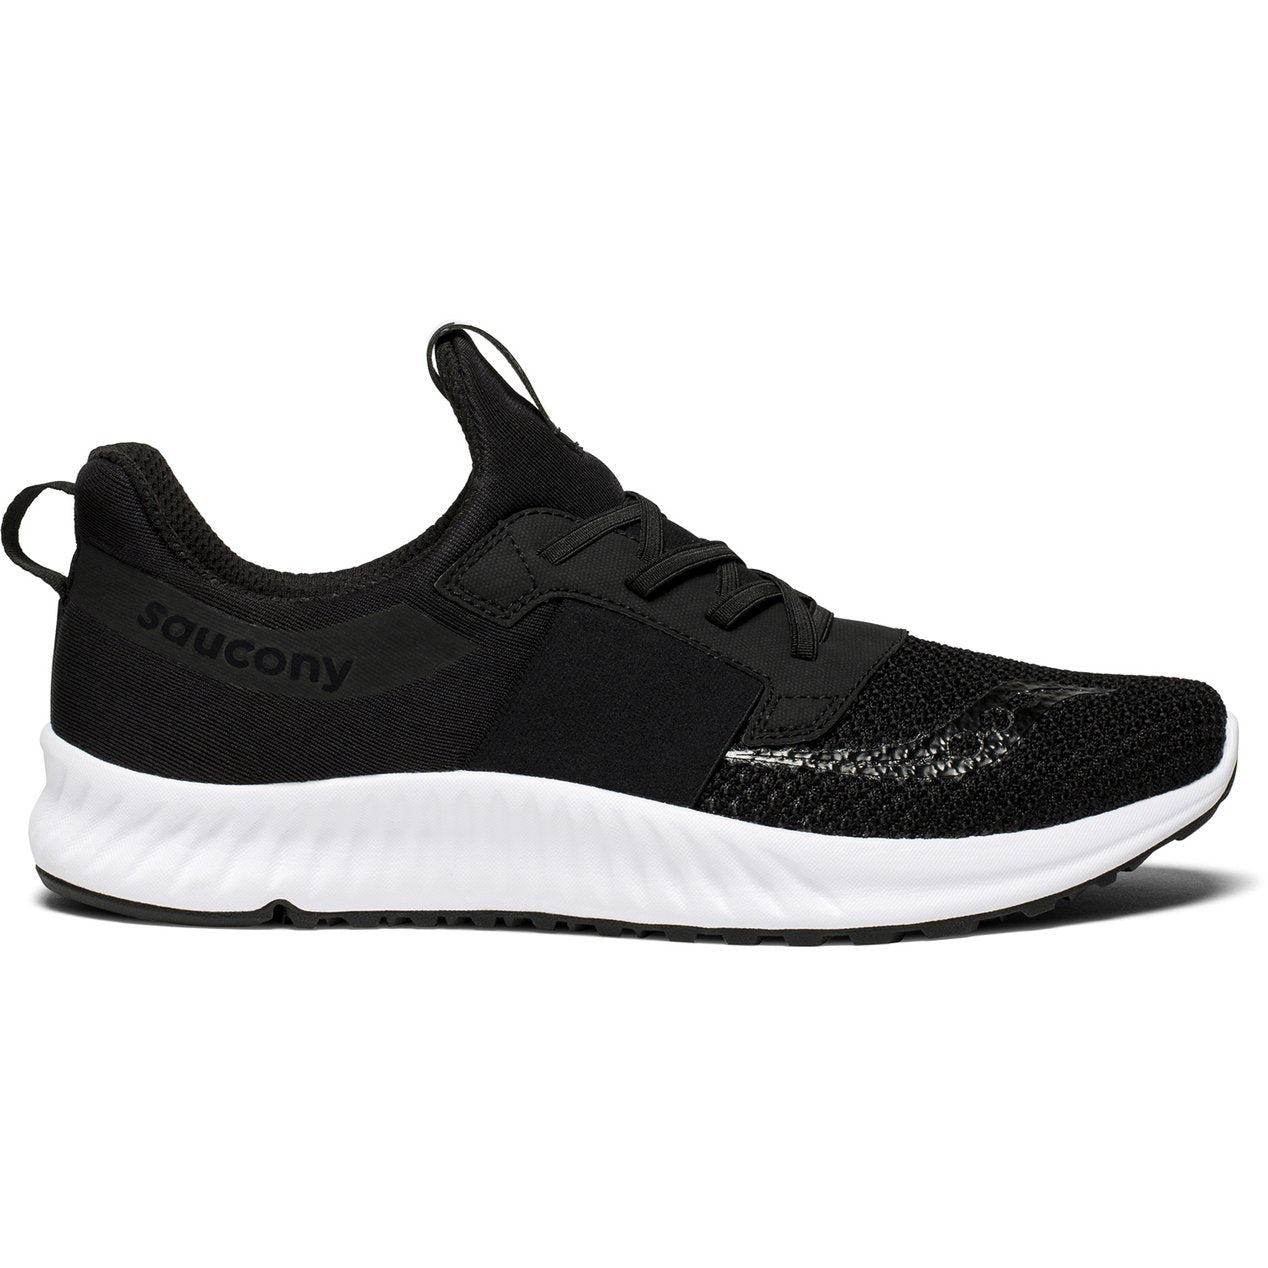 Men's Stretch & Go Breeze Running Shoes